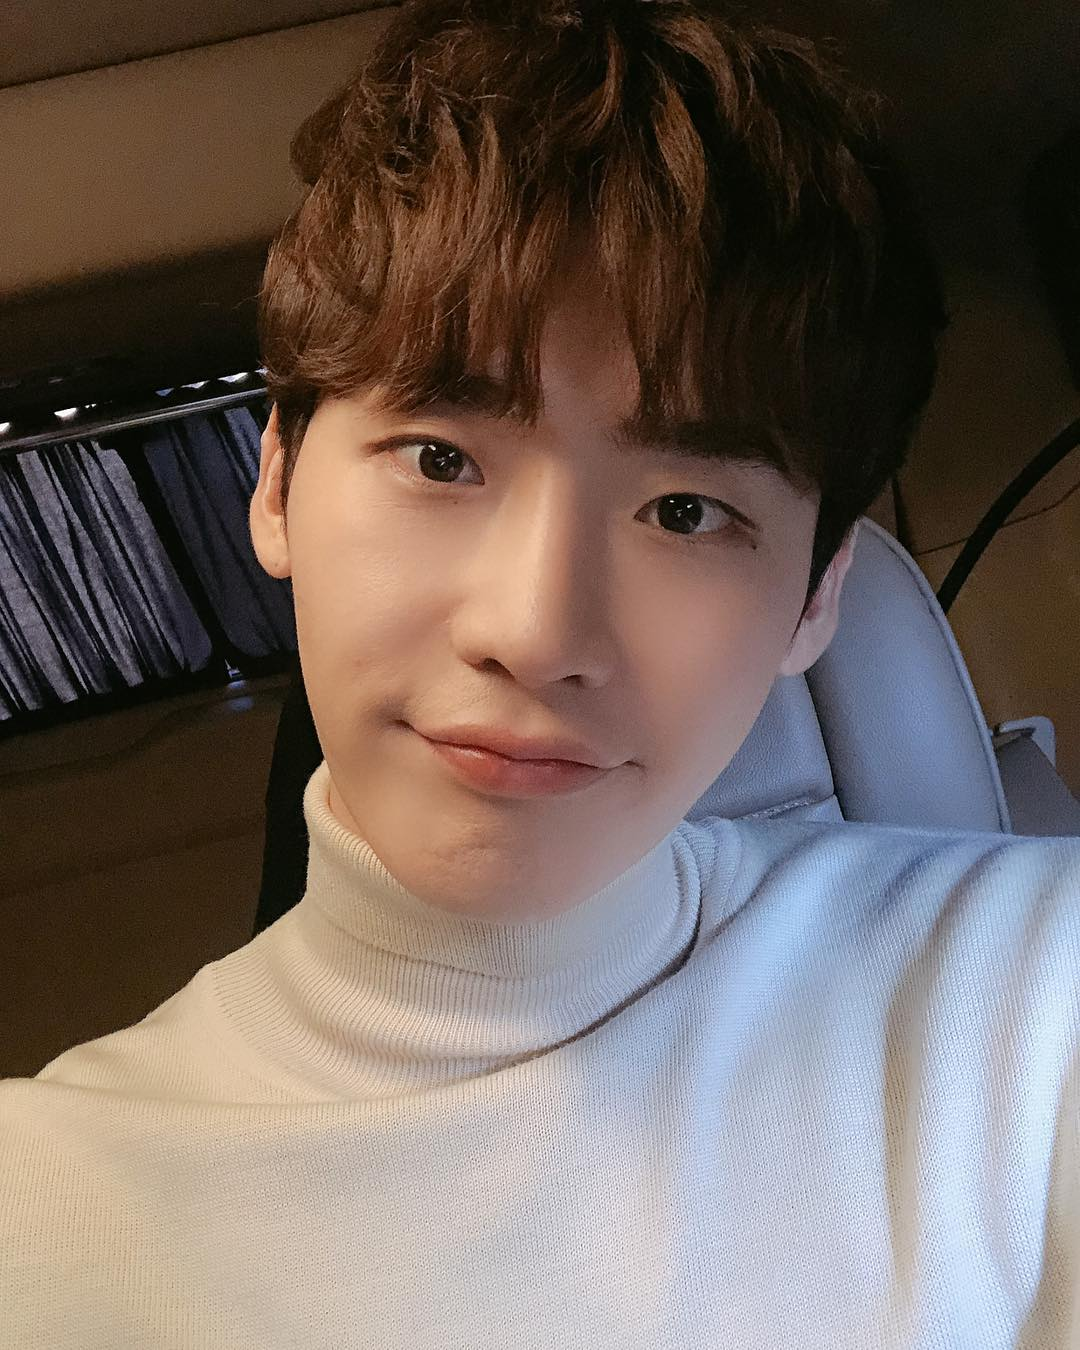 Lee Jong-suk South Korean Actor, Model